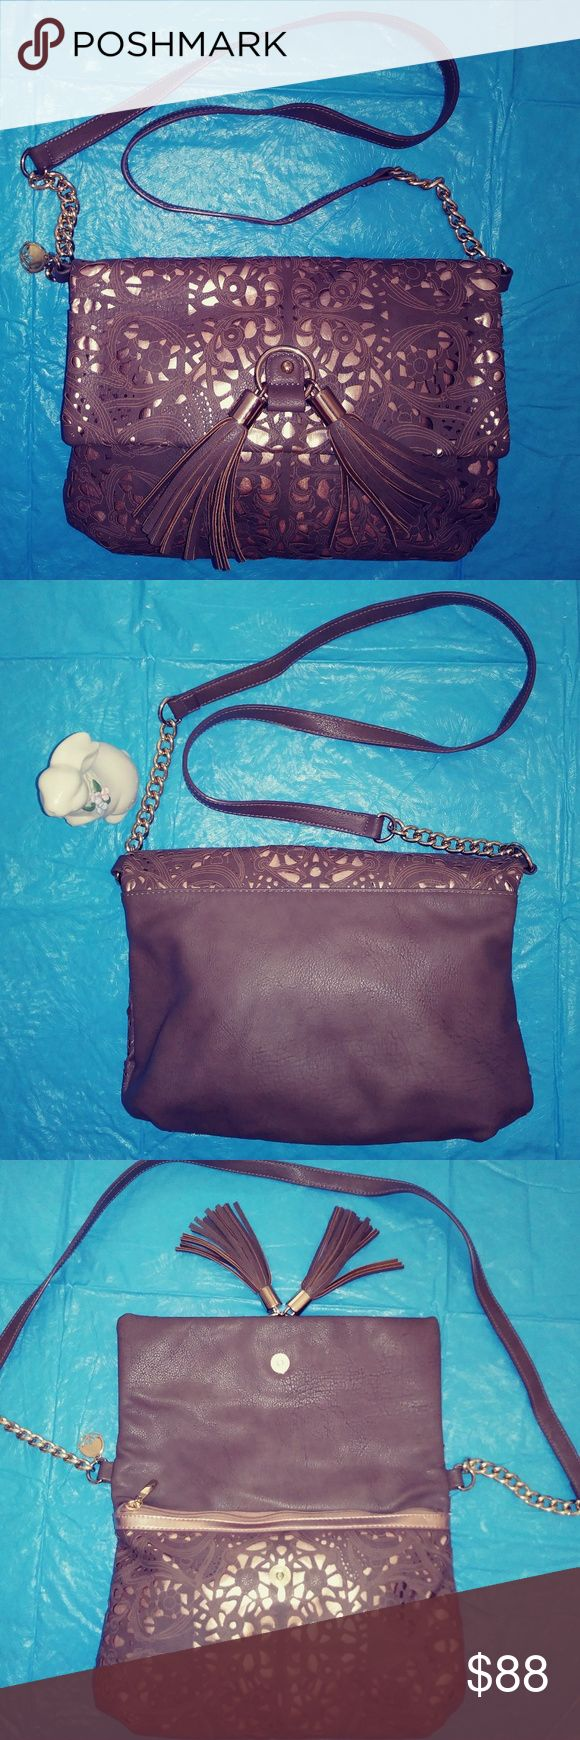 BIG BUDDHA BAG tan and gold shoulder bag BIG BUDDHA BAG tan and gold shoulder bag. Exquisite bag with cut-out details, gold underneath, flap with magnetized snap closure, two tassels, great gold tone charm, chain and hardware. Beautiful print lining, very roomy, one zipper and two open pockets. Big Buddha Bags Shoulder Bags